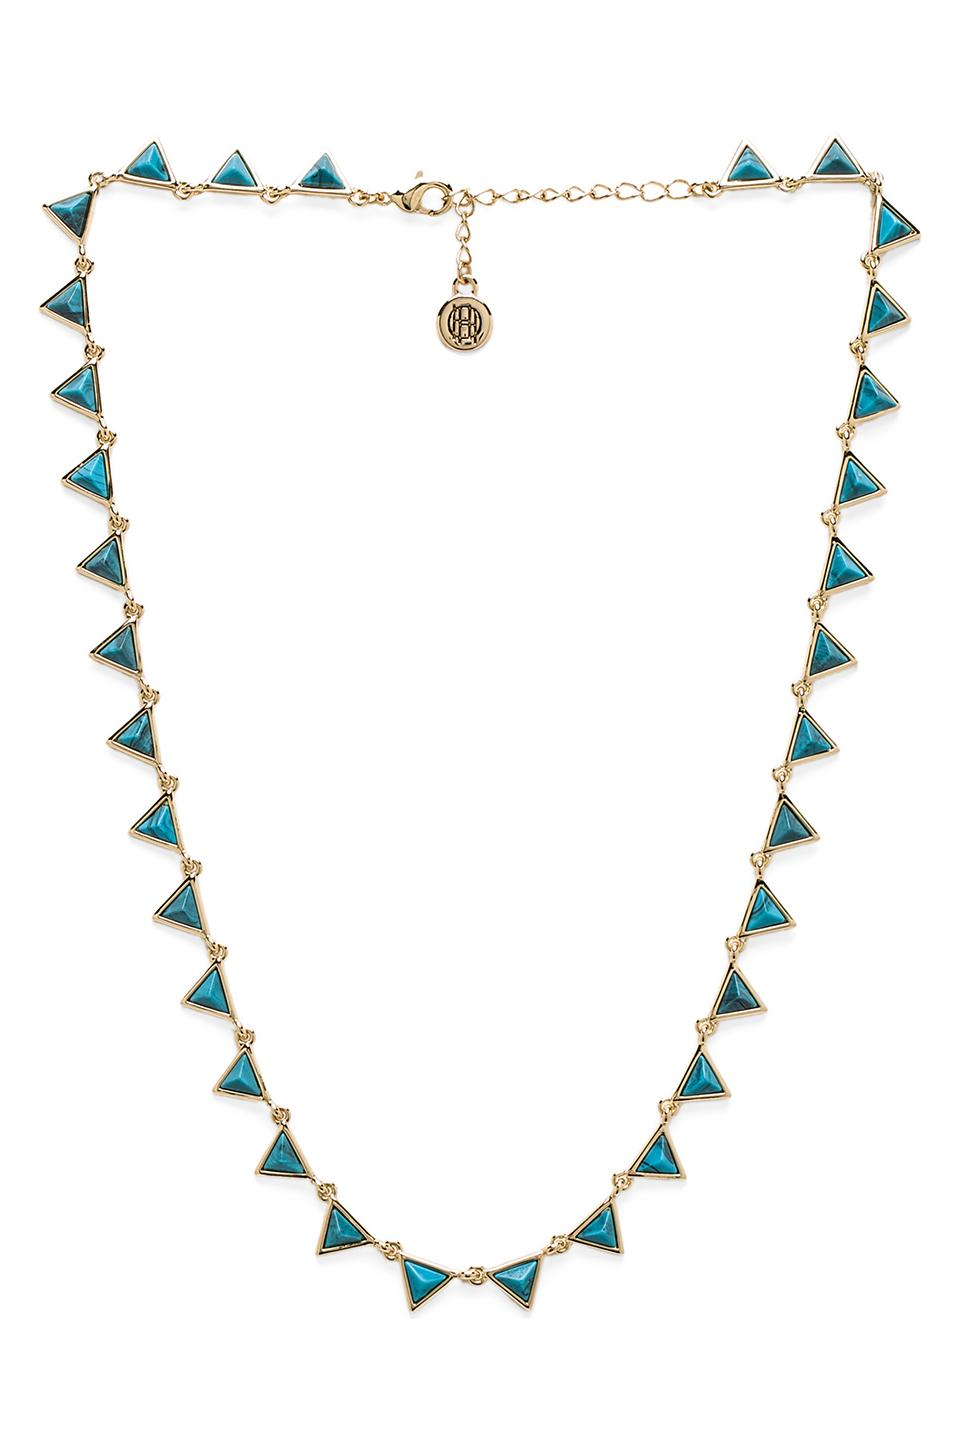 House of Harlow 1960 House of Harlow Floating Meteora Collar Necklace in Gold/Blue